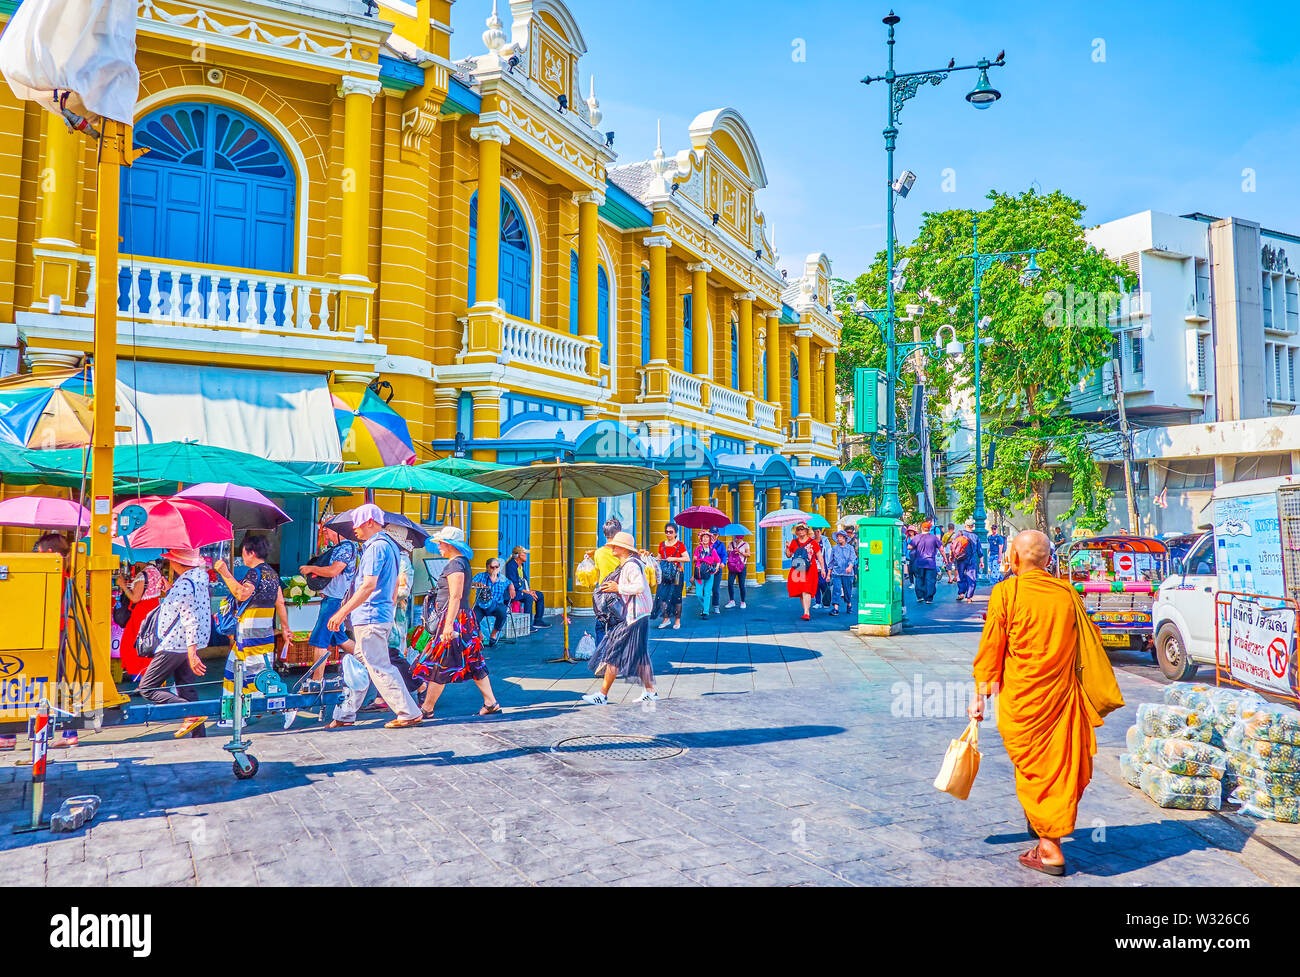 BANGKOK, THAILAND - APRIL 22, 2019: The busy street leading to Tha Chang pier, one of the central in the city, and surroundedwith beautiful buildings - Stock Image